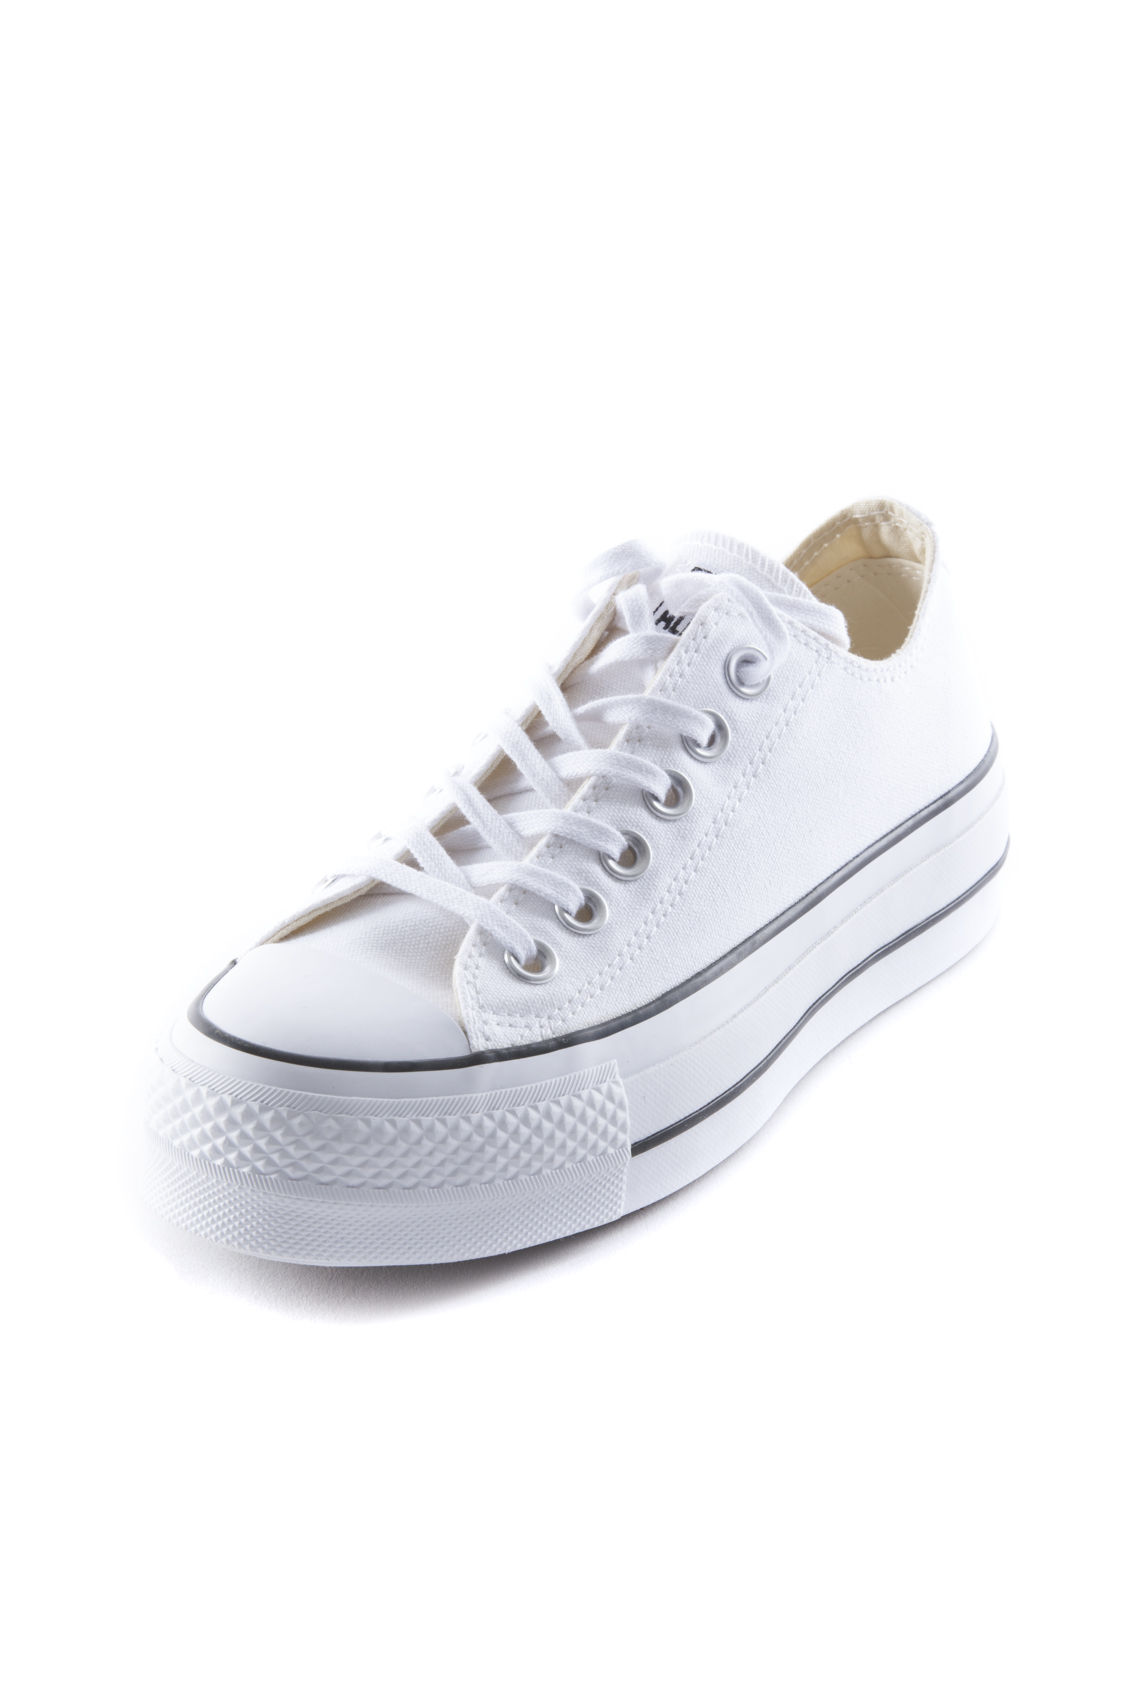 converse single muslim girls Shop james harden shoes at foot locker prices subject to change without notice products shown may not be available in our storesmore info.